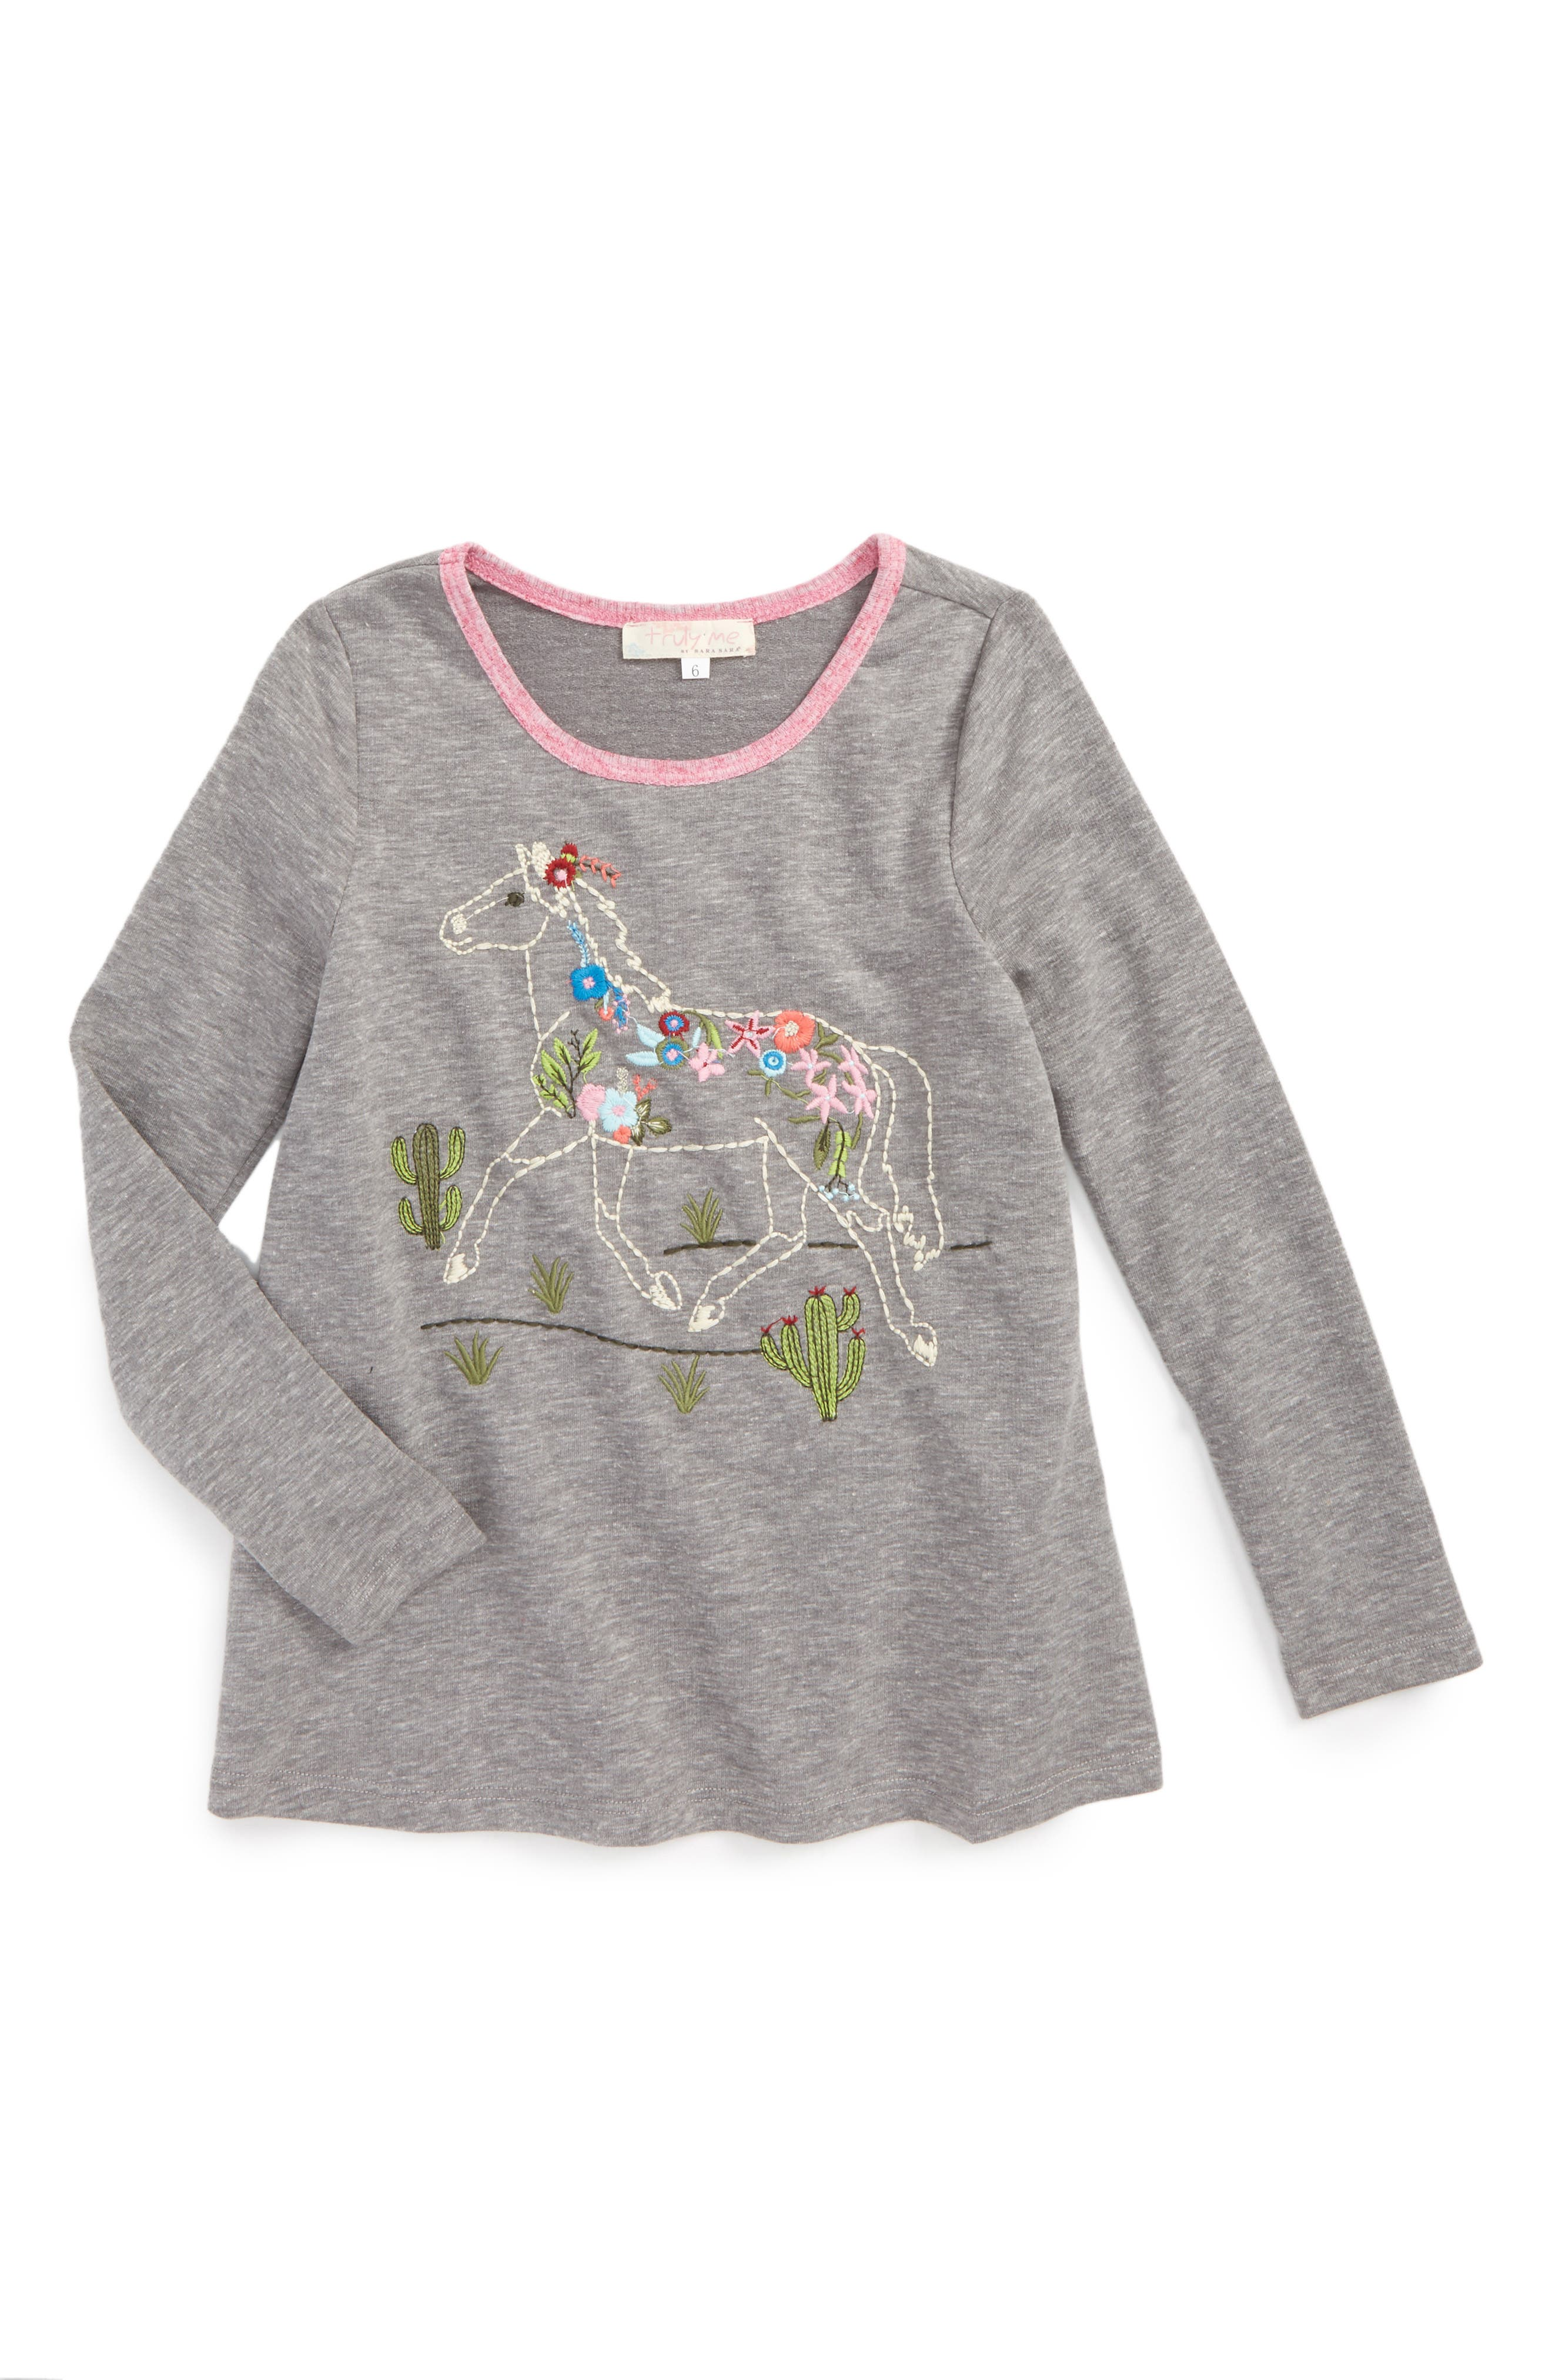 Main Image - Truly Me Embroidered Horse Tee (Toddler Girls & Little Girls)